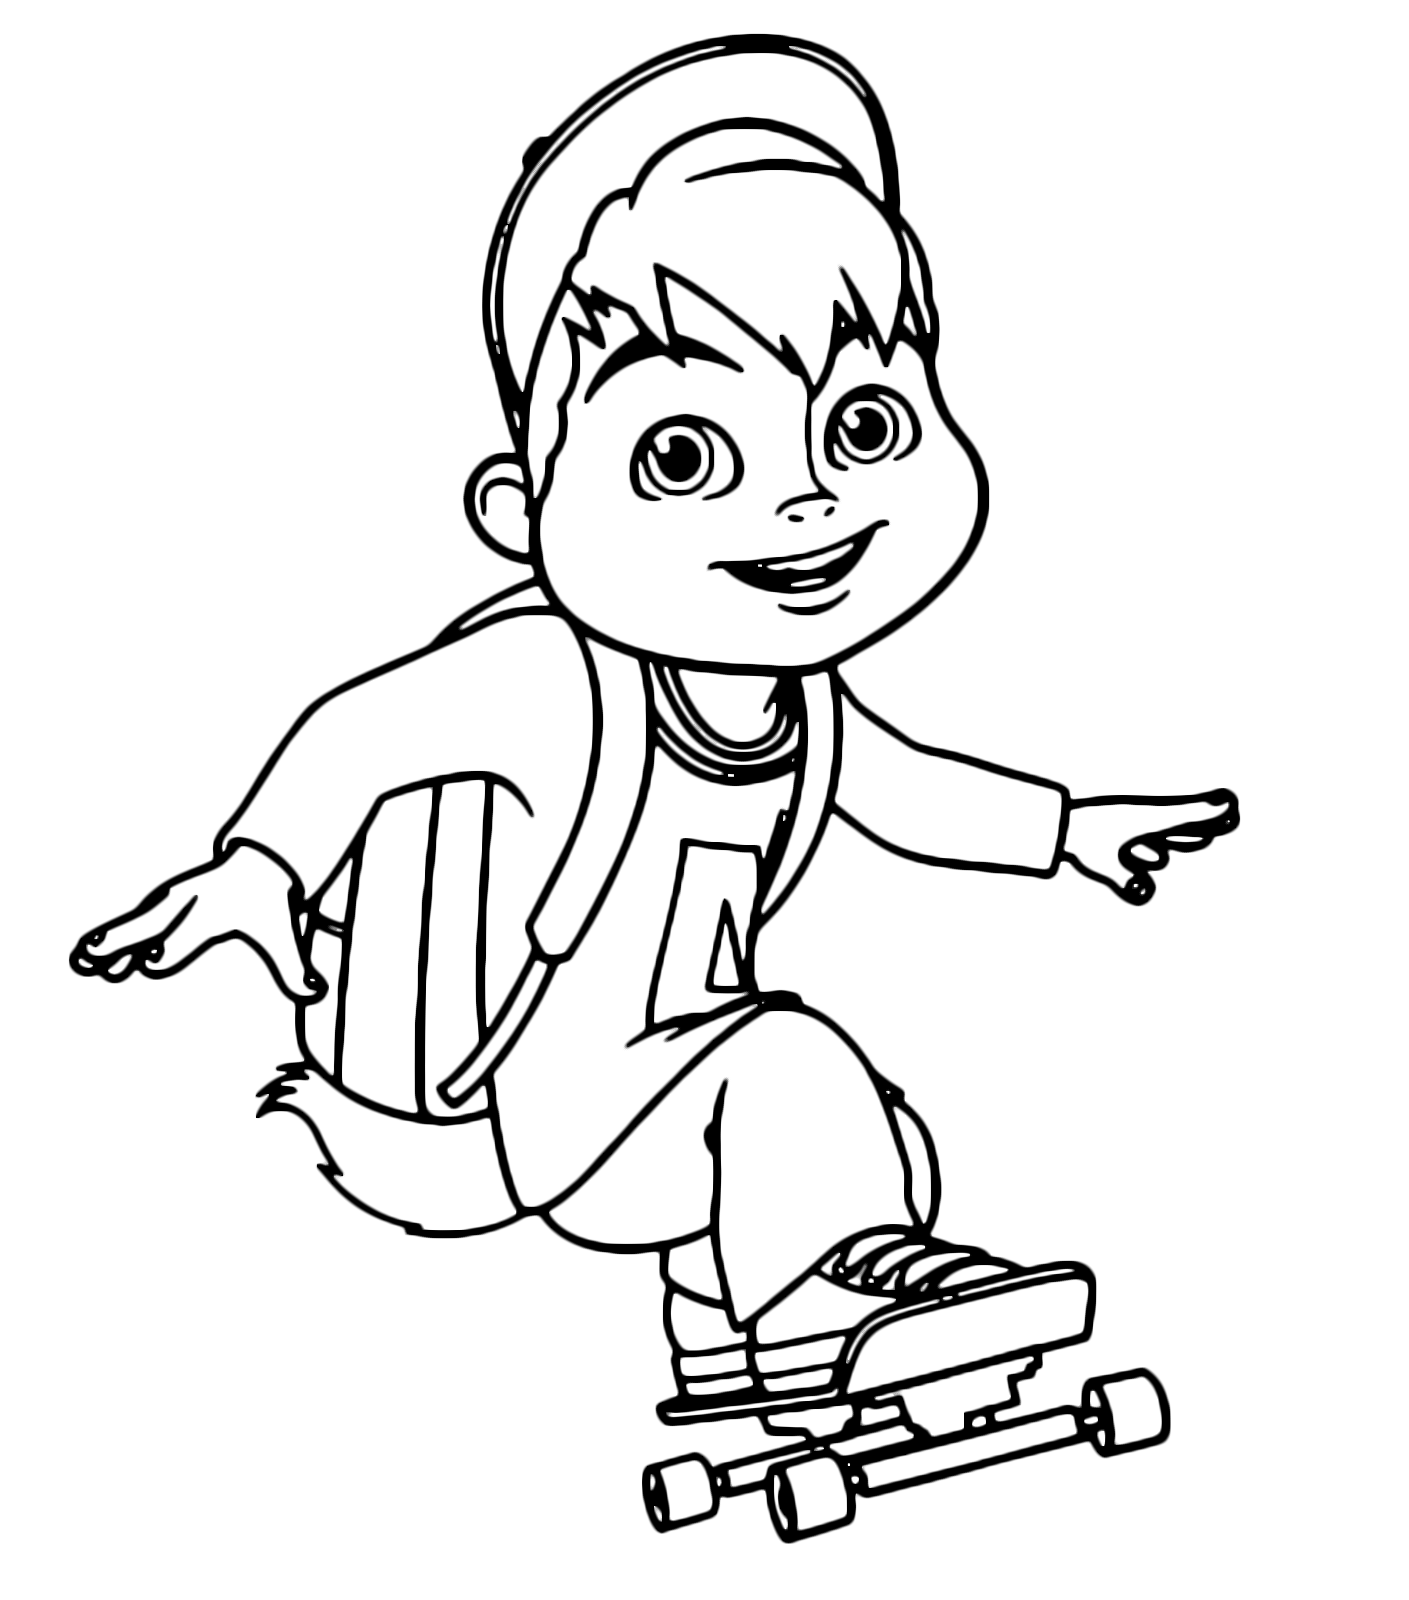 Alvin And The Chipmunks Alvin Hurtling Fast On The Skateboard